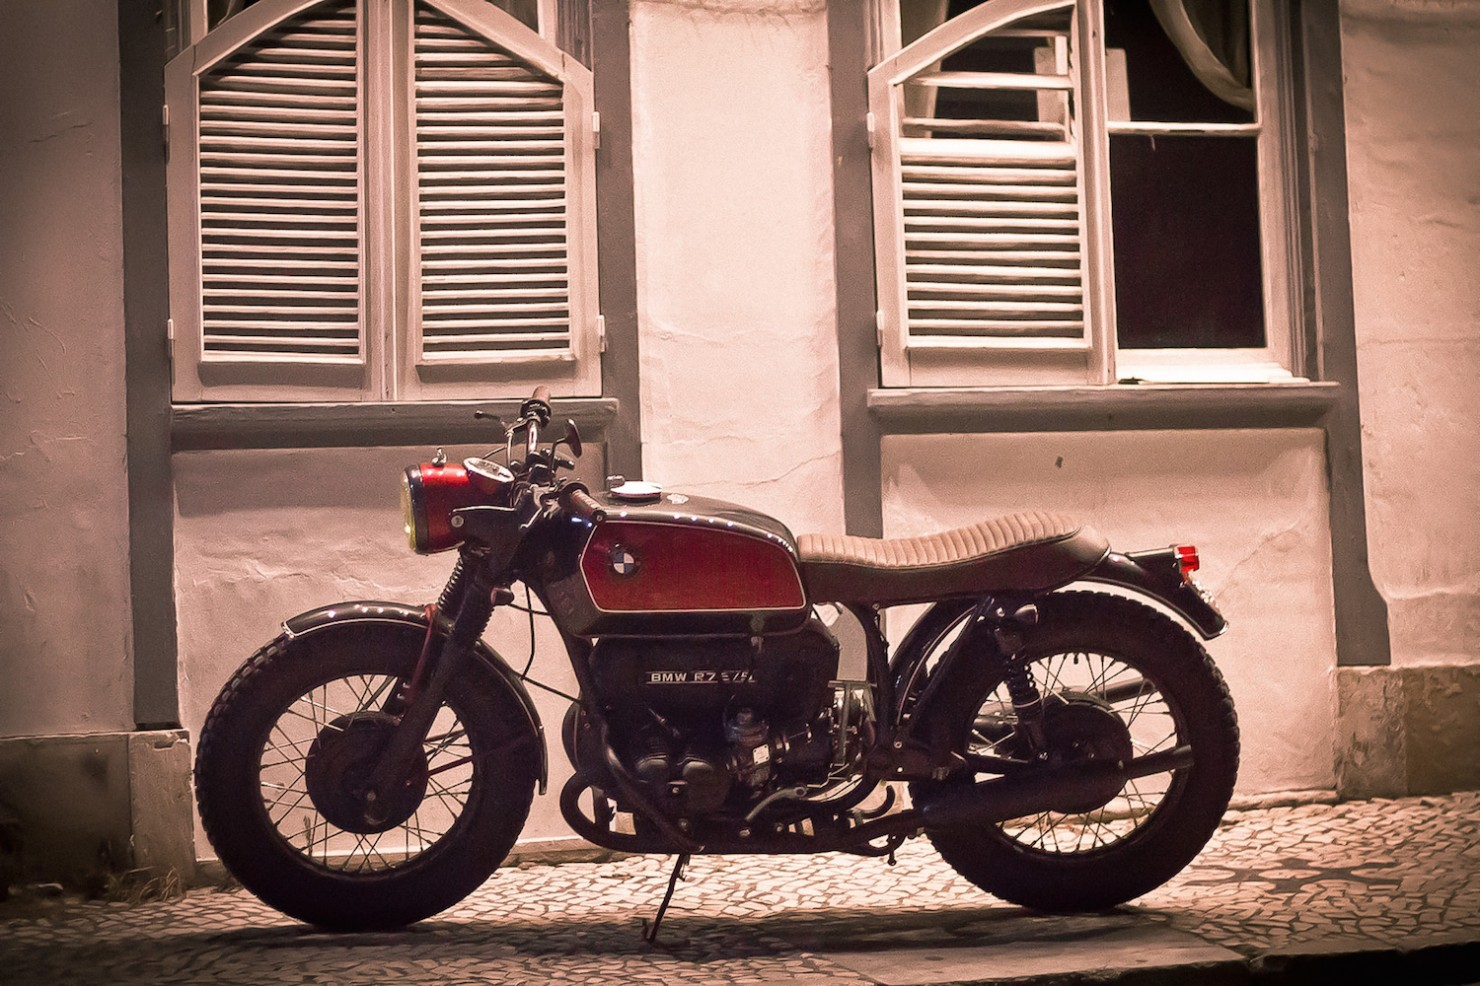 BMW-R755-Motorcycle-10